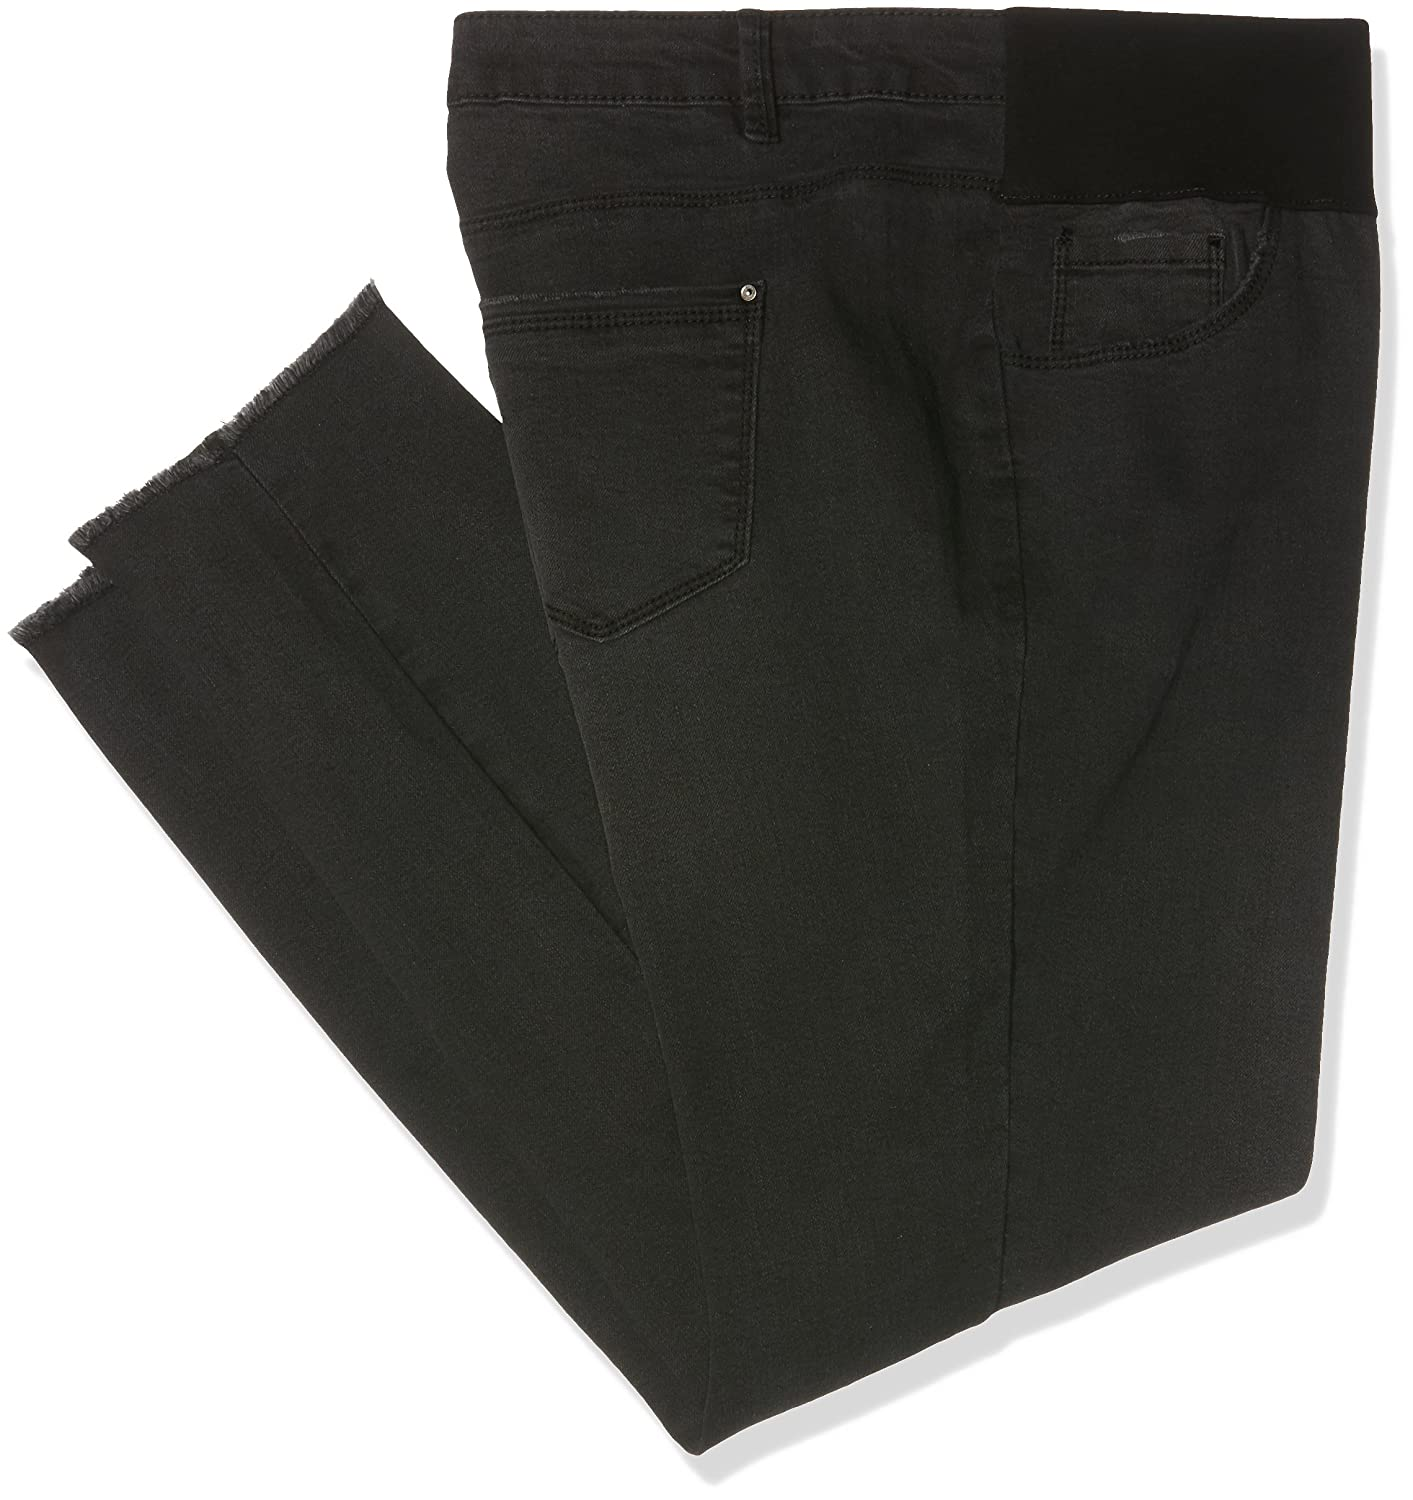 New Look Savannah, Jeans Donna New Look Maternity Savannah Nero (Black) 42W x 32L 3901341